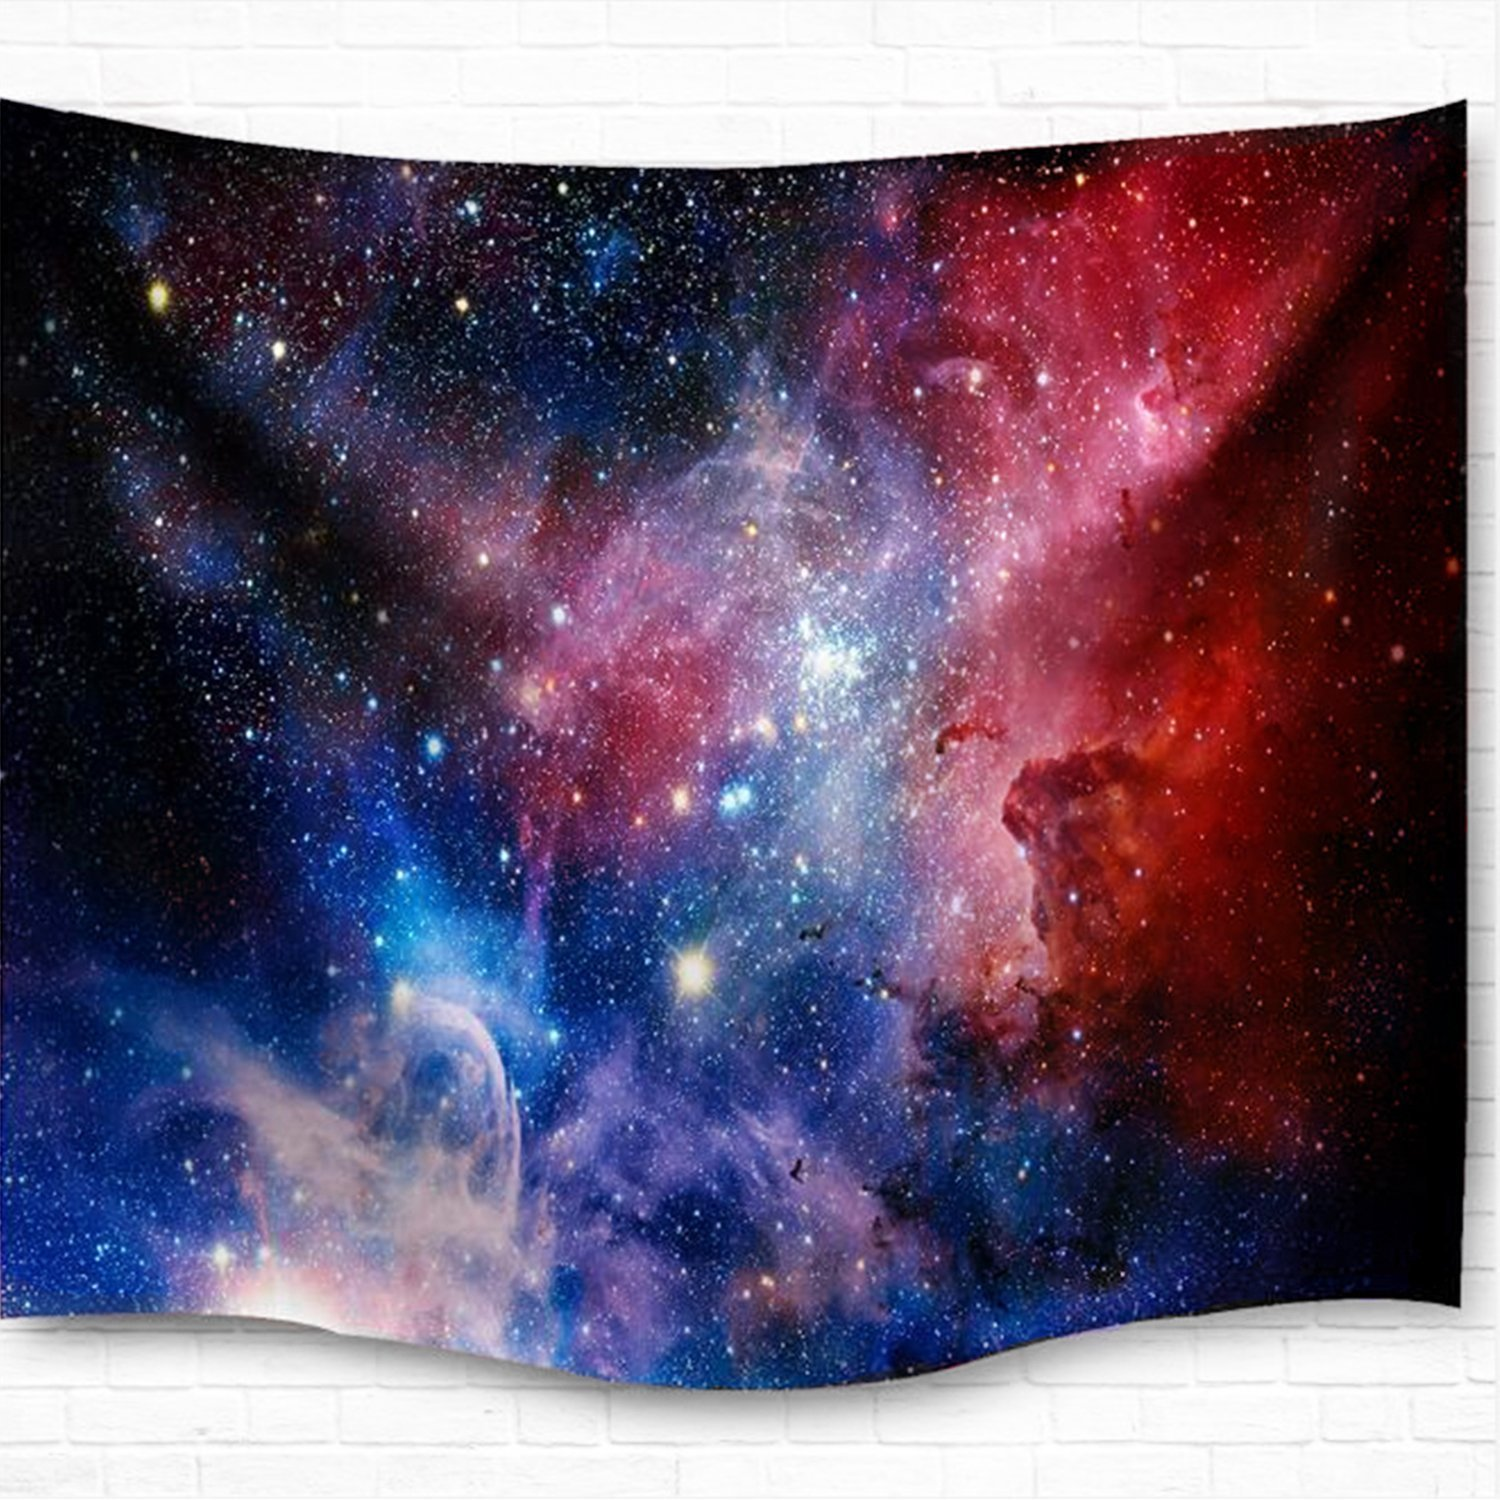 Forest Starry Tapestry Wall Hanging 3D Printing Forest Tapestry Galaxy Tapestry Forest Milky Way Tapestry Tree Tapestry Night Sky Tapestry Wall Tapestry for Dorm Living Room Bedroom (M, 4#forest star) Smurfs Yingda